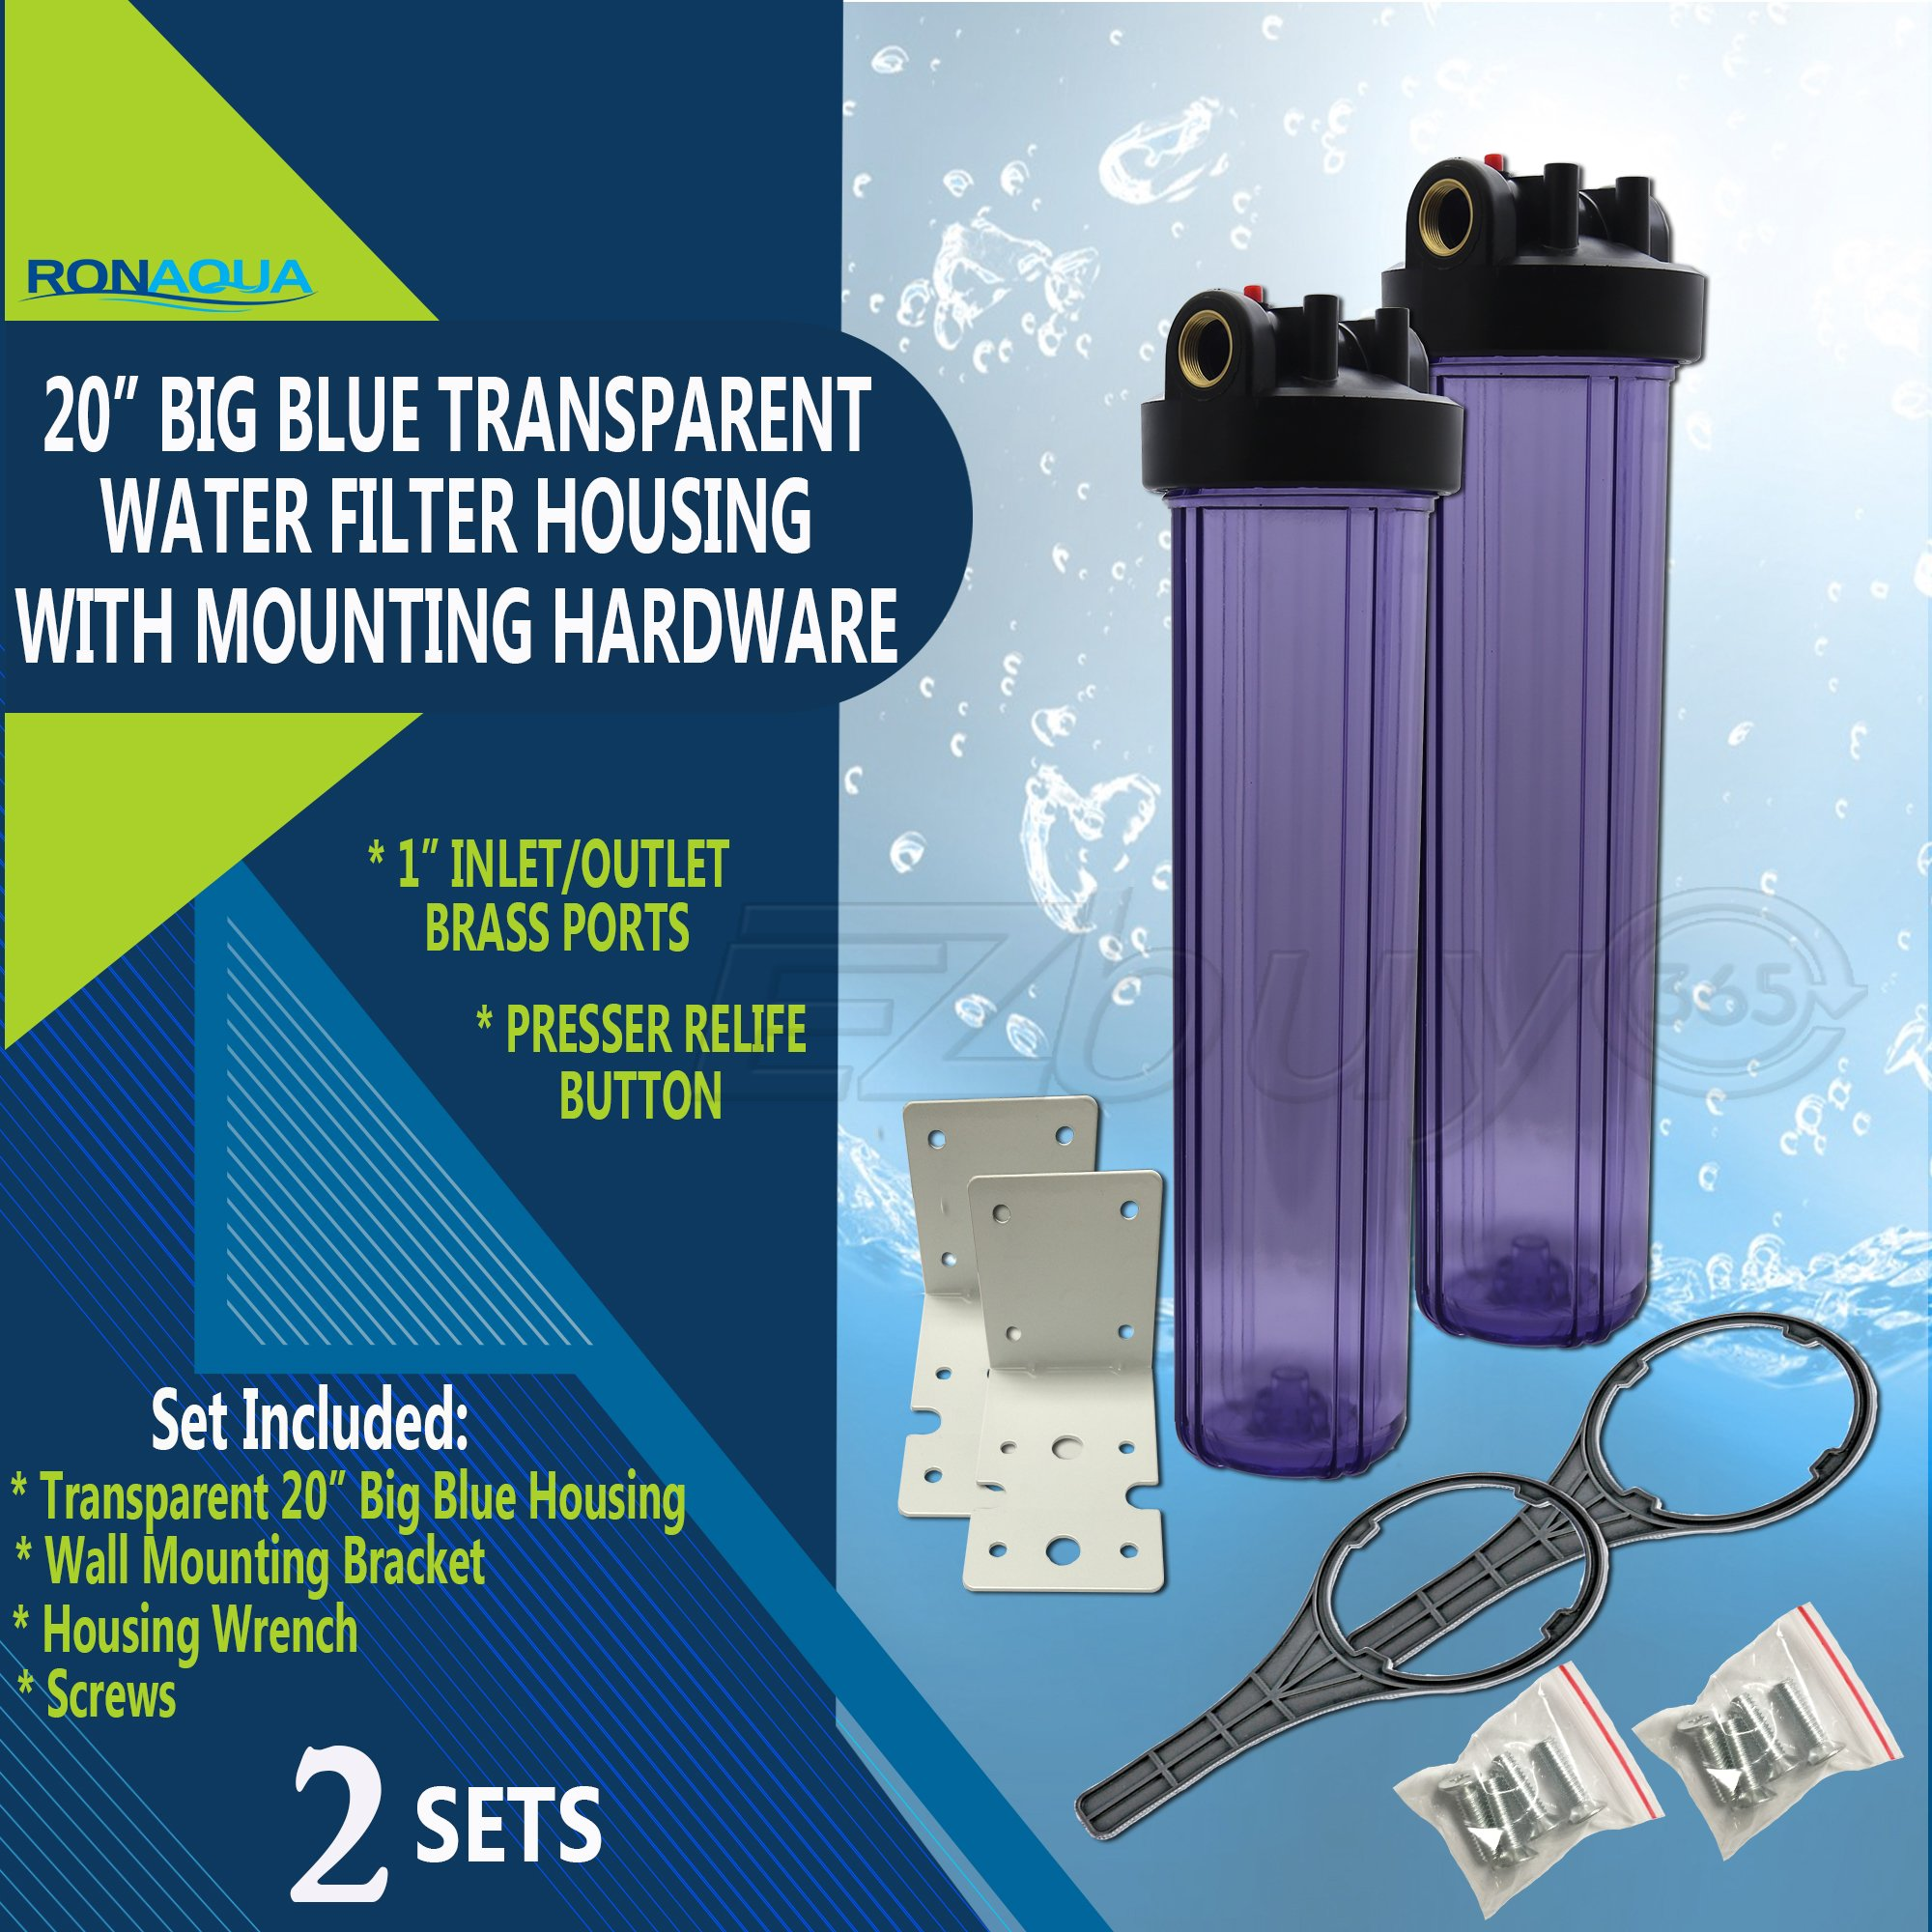 "20'' Big Blue Housing for Whole House Water Filtration System, 1"" Brass Port, Mounting Hardware Included! (2 Sets, Transparent)"